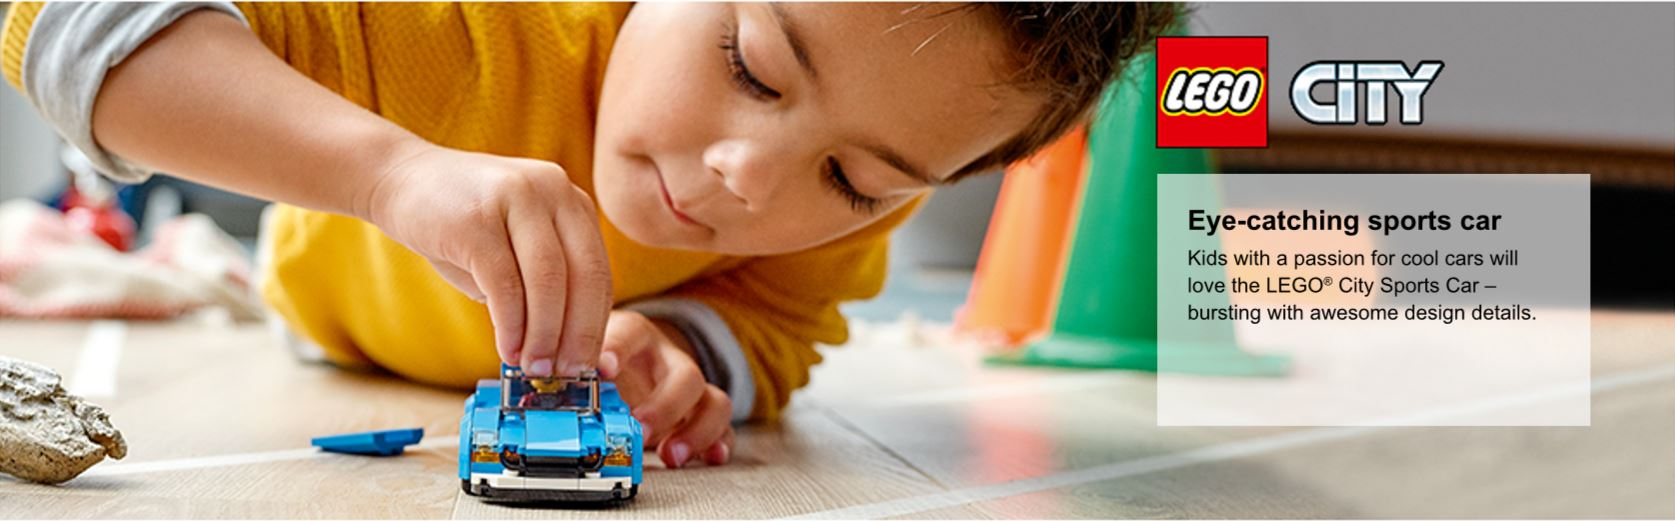 boy playing with sports car